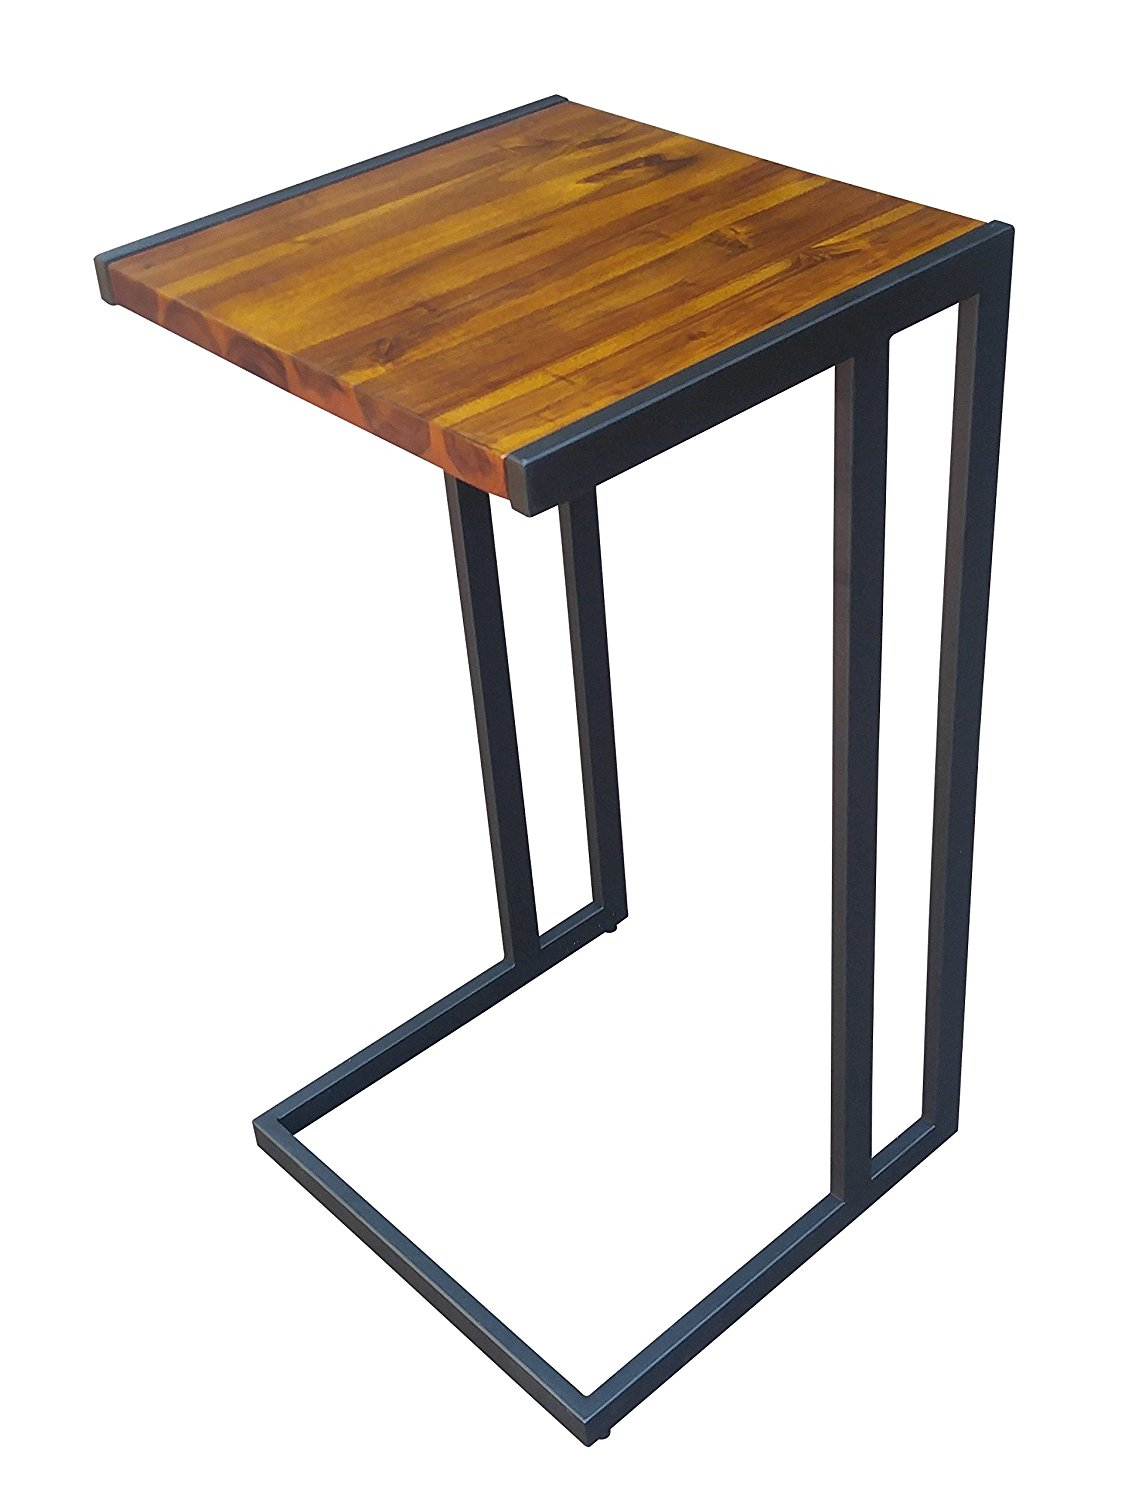 Design 59 inc Acacia Hardwood C Table / End Table / Laptop Stand, NO ASSEMBLY REQUIRED